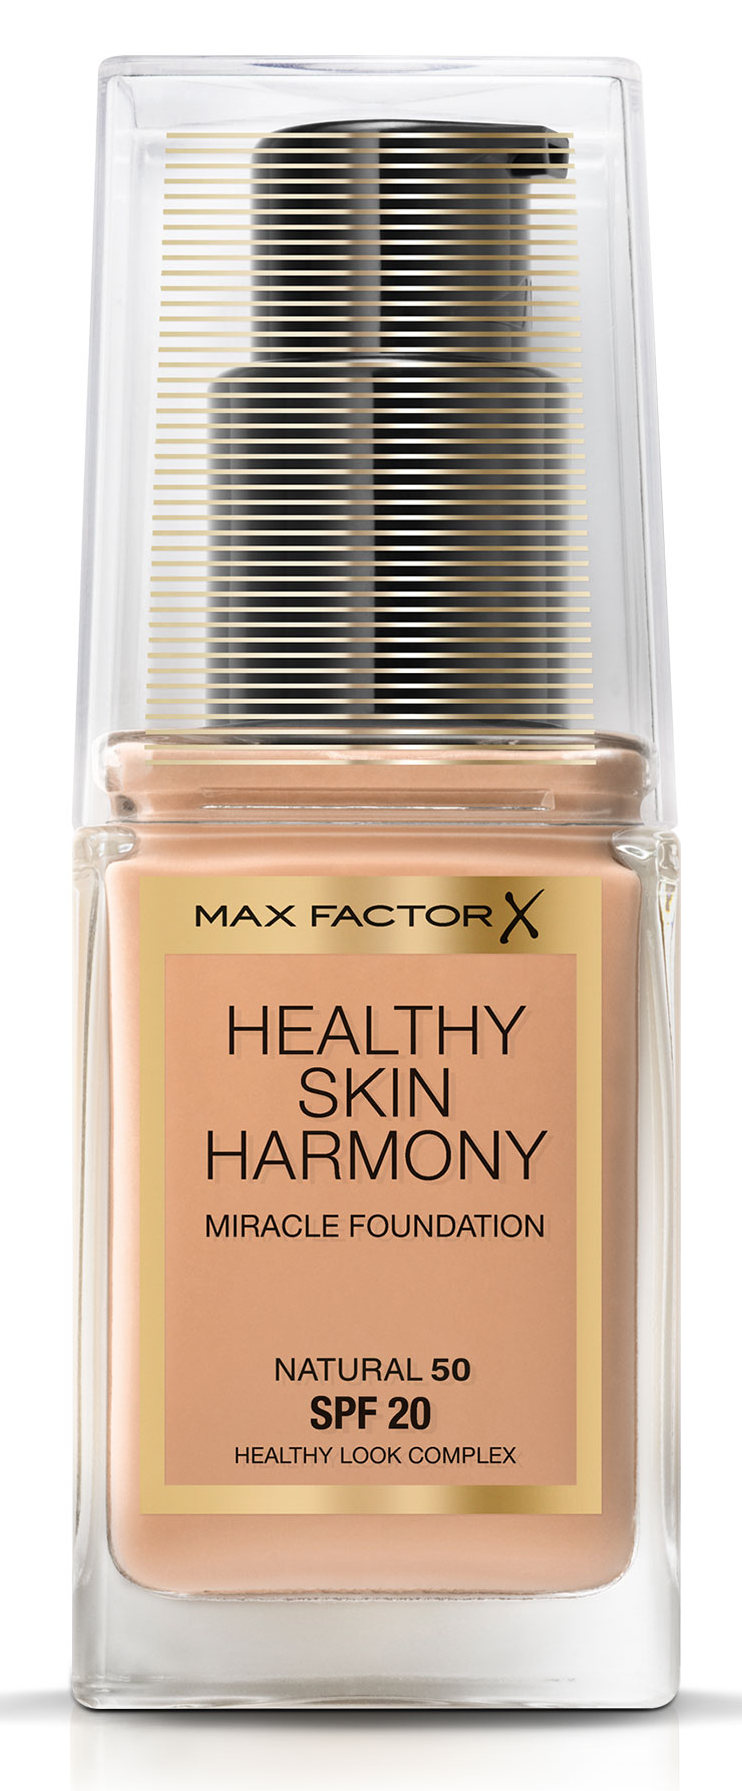 MAX FACTOR Основа тональная 50 / Healthy Skin Harmony Miracle Foundation natural